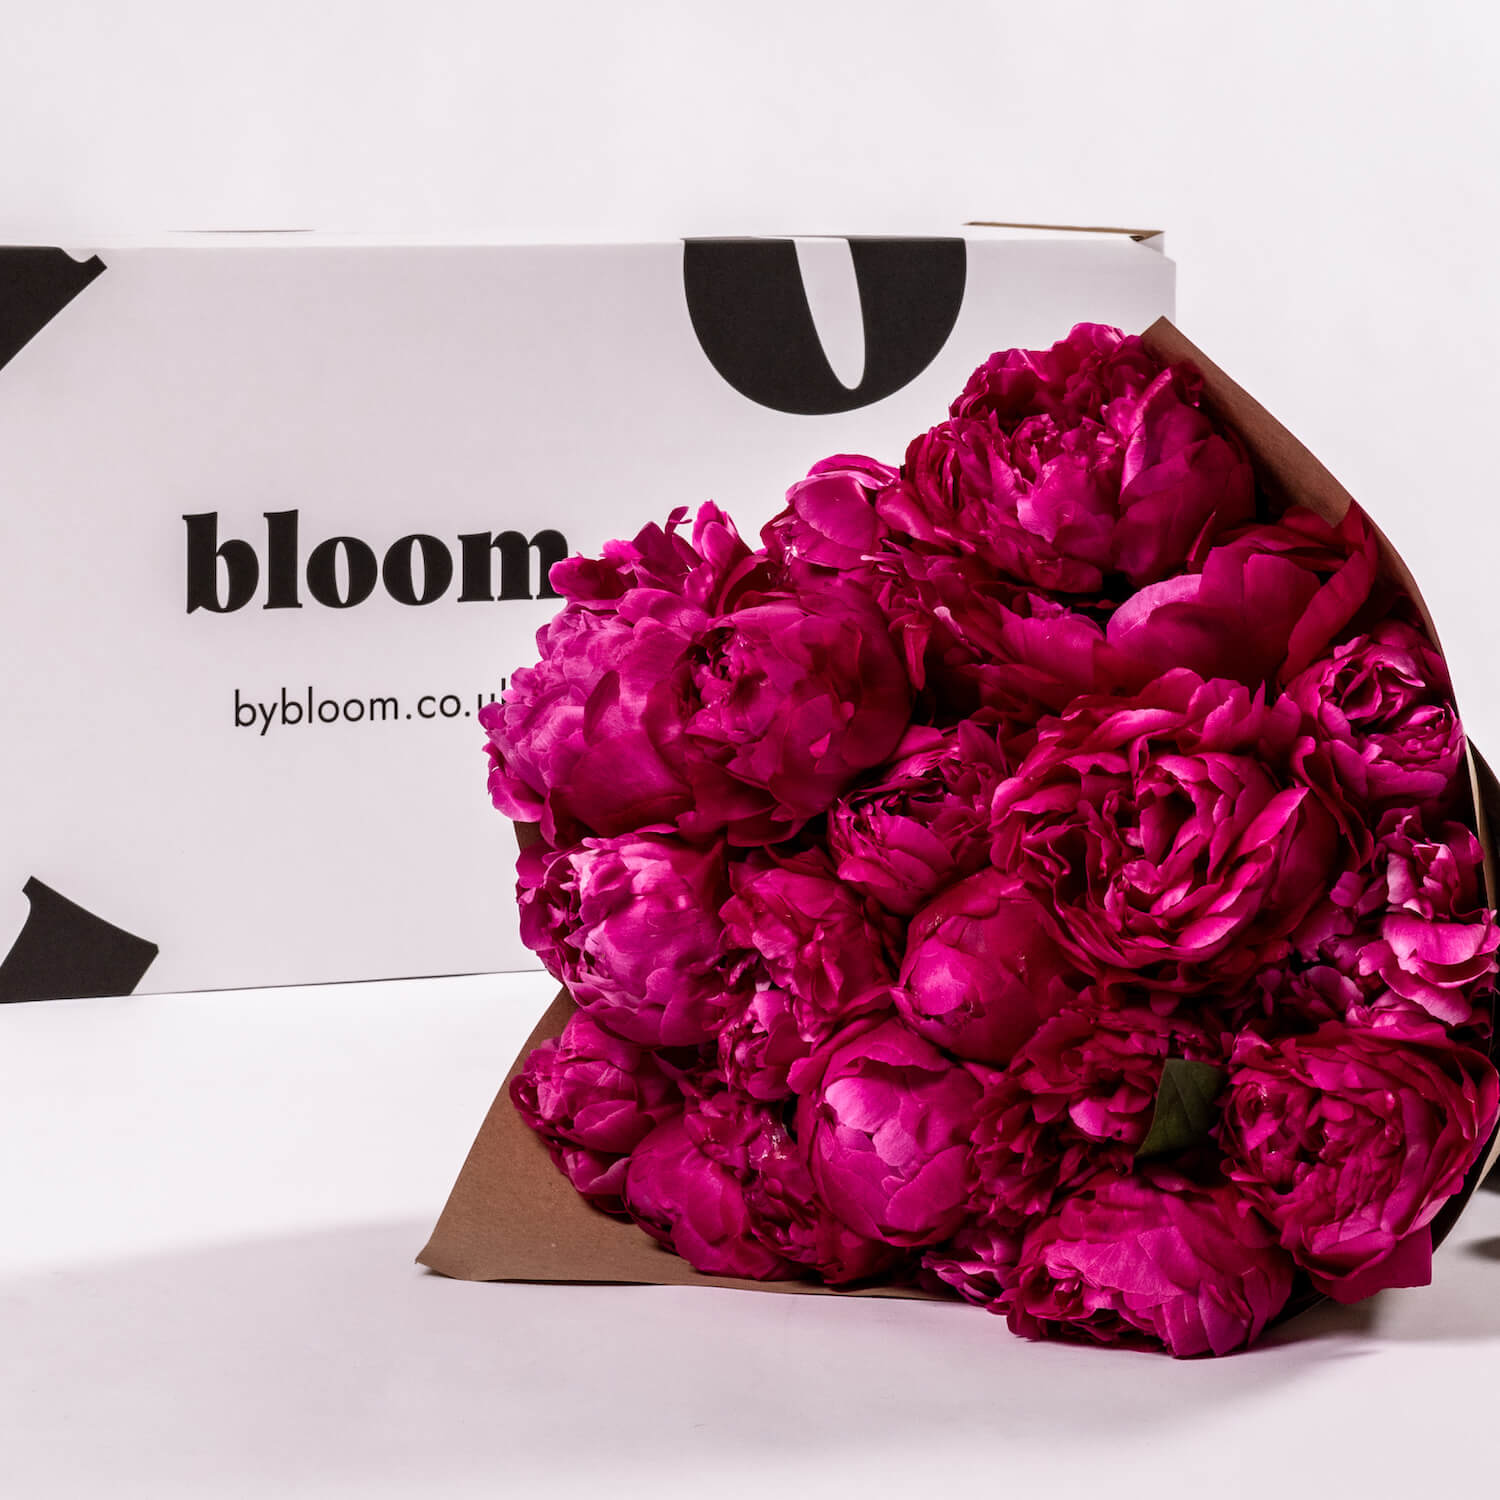 Bloom Flower Delivery | Cerise Hot Pink Peony